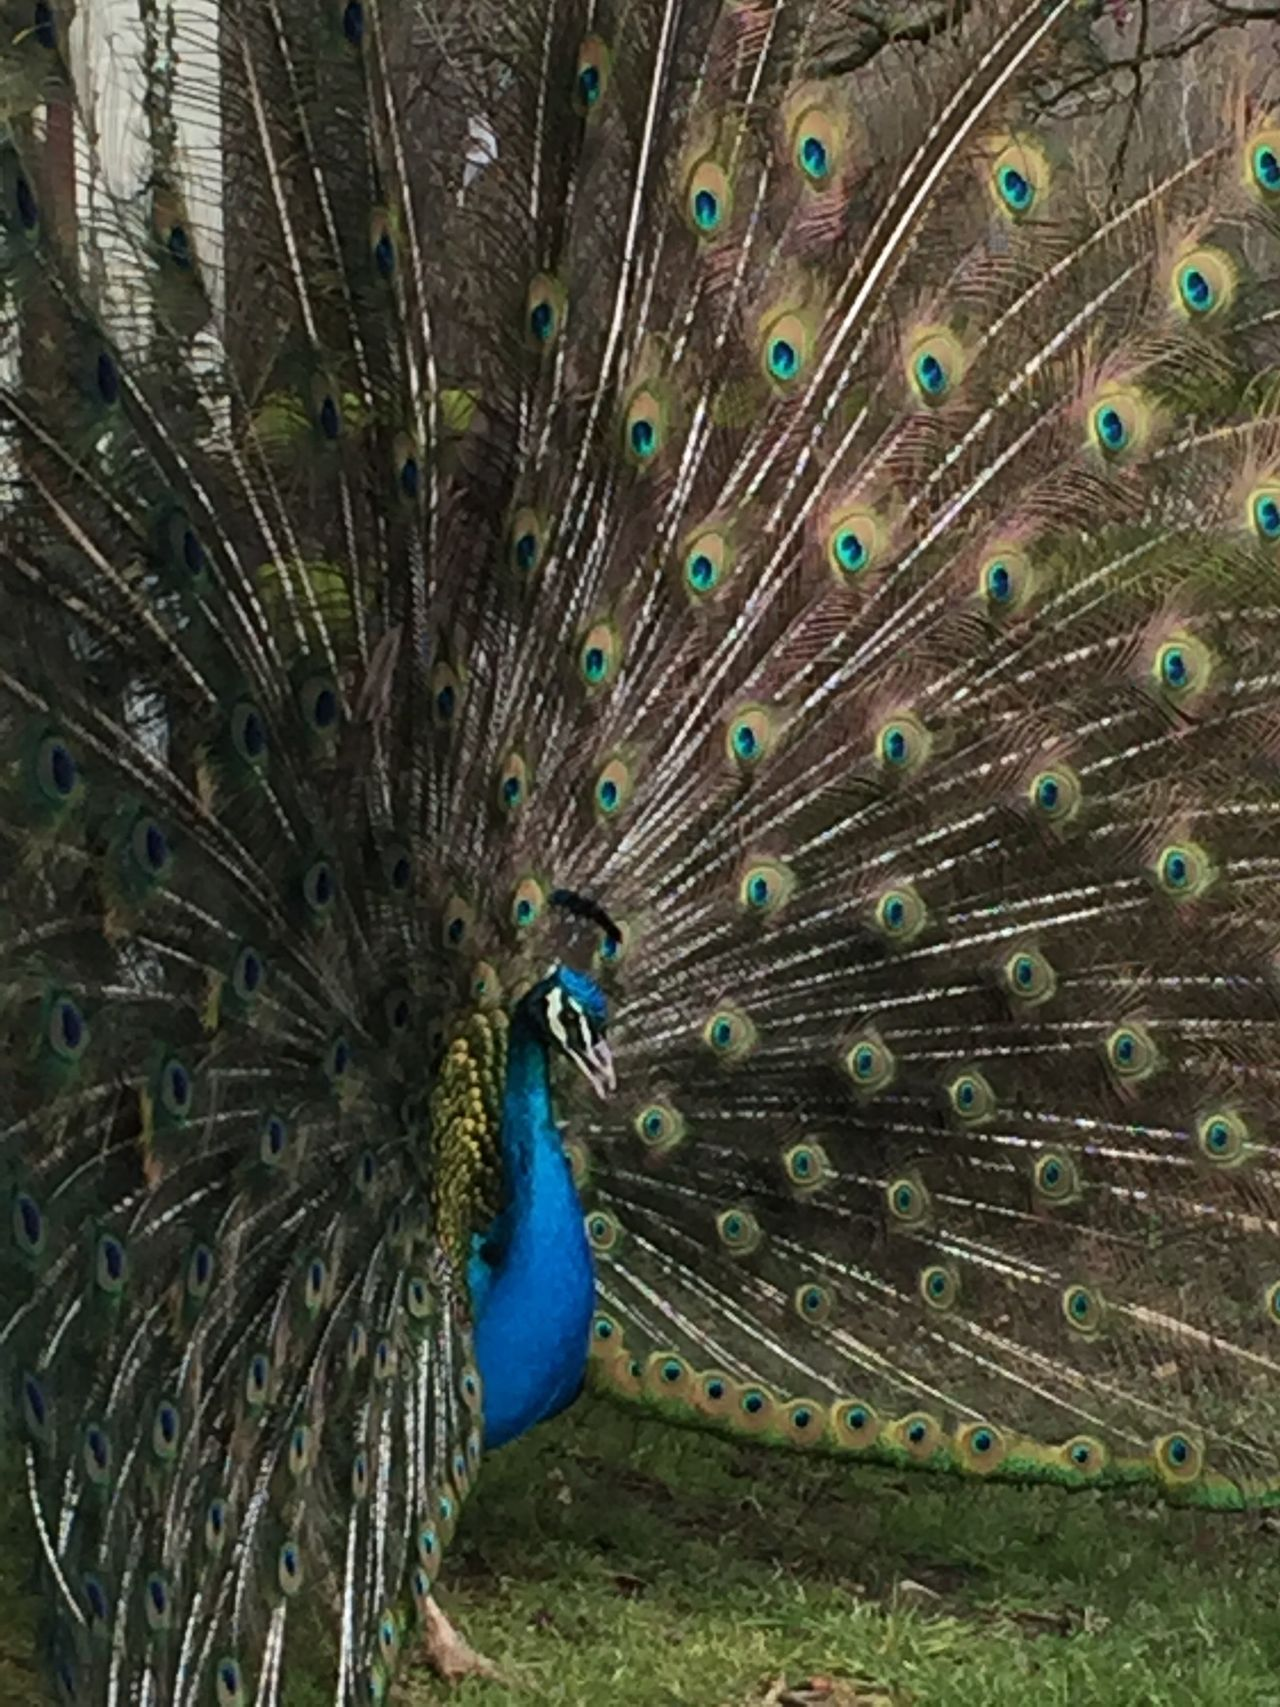 Peacock One Animal Bird Fanned Out Peacock Feather Animals In The Wild Animal Themes Feather  Beauty In Nature Nature Animal Wildlife Outdoors No People Day Peacock Feathers Peacock Blue Birds Peacock Tail